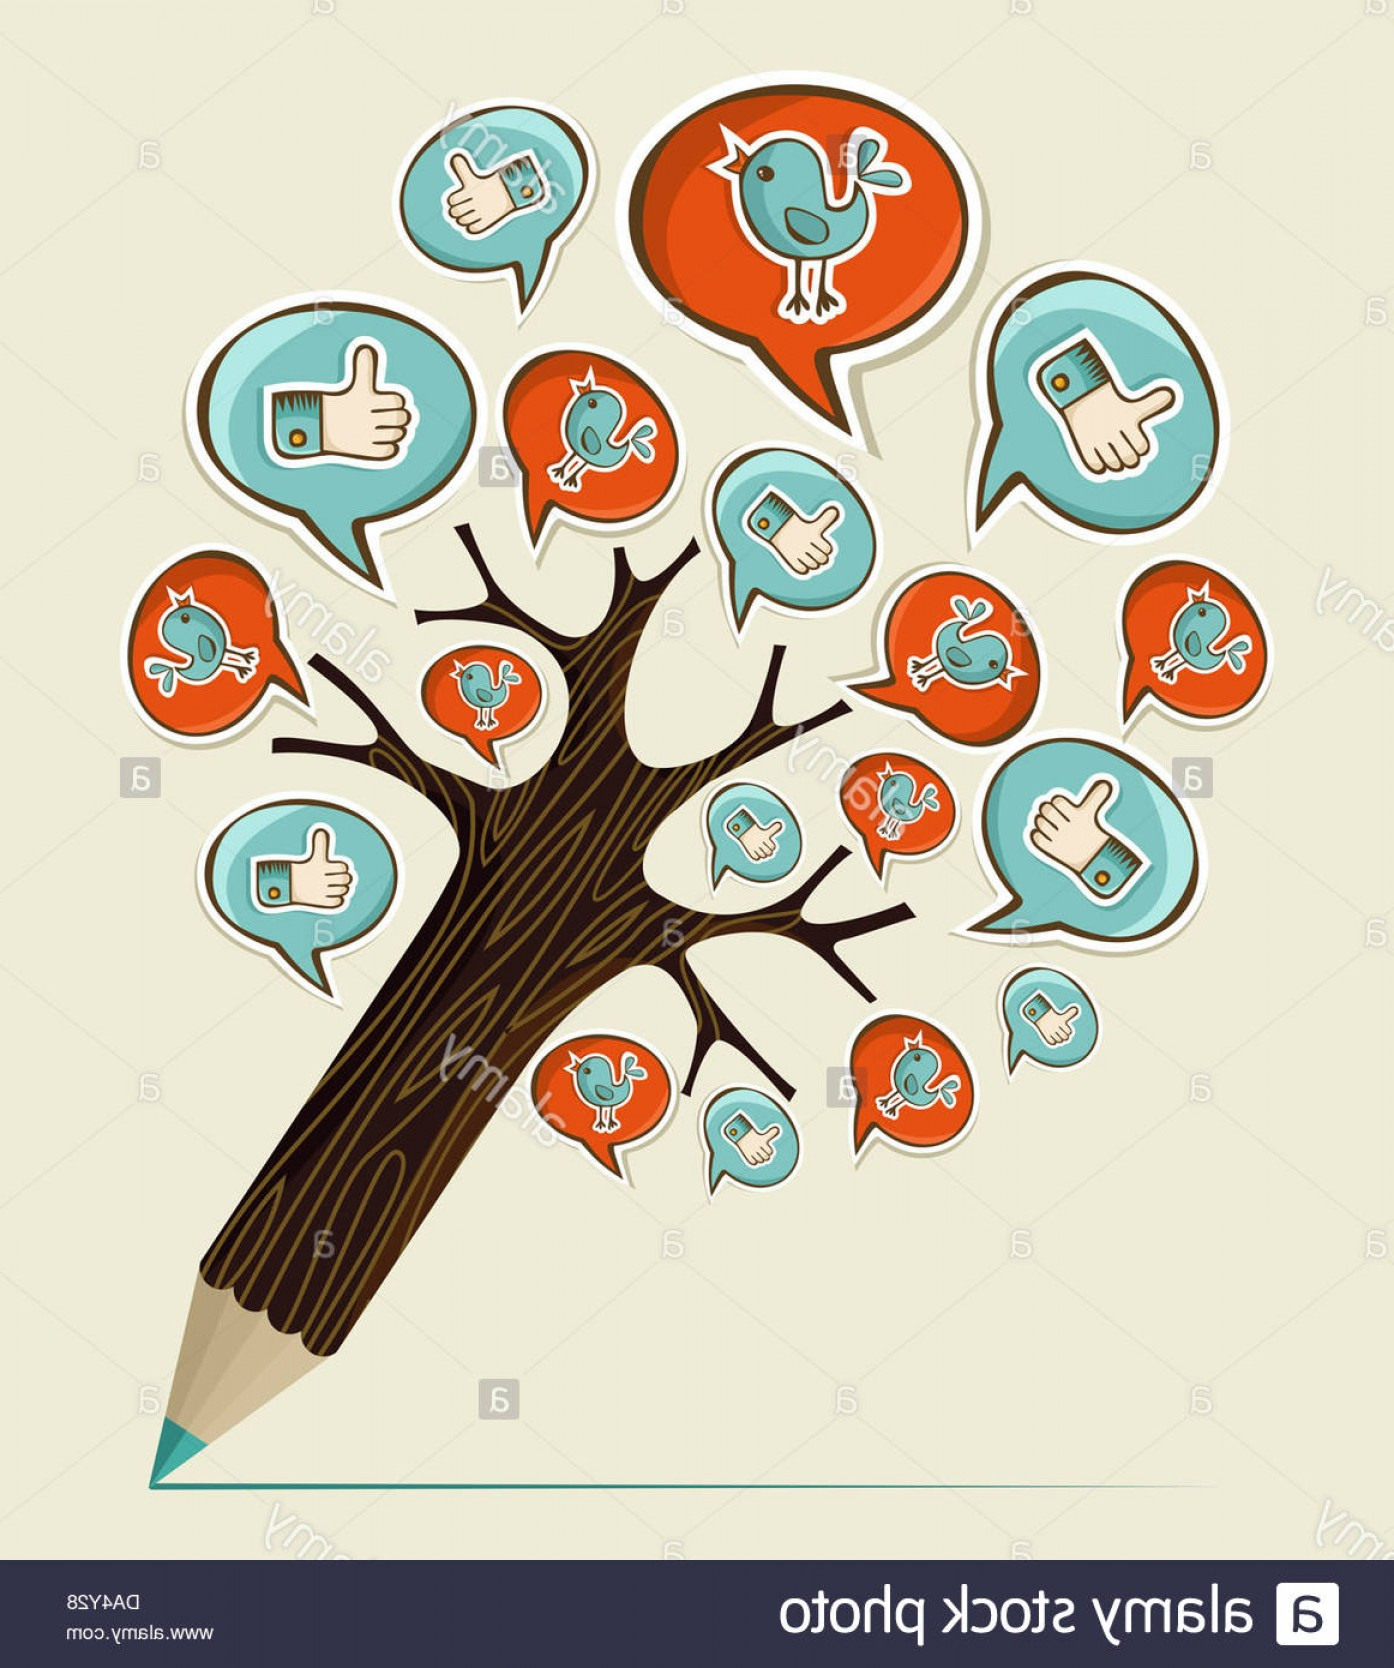 Pencil Icon Vectors Social Media: Stock Photo Social Media Hand Drawn Icons Concept Pencil Tree Vector Illustration